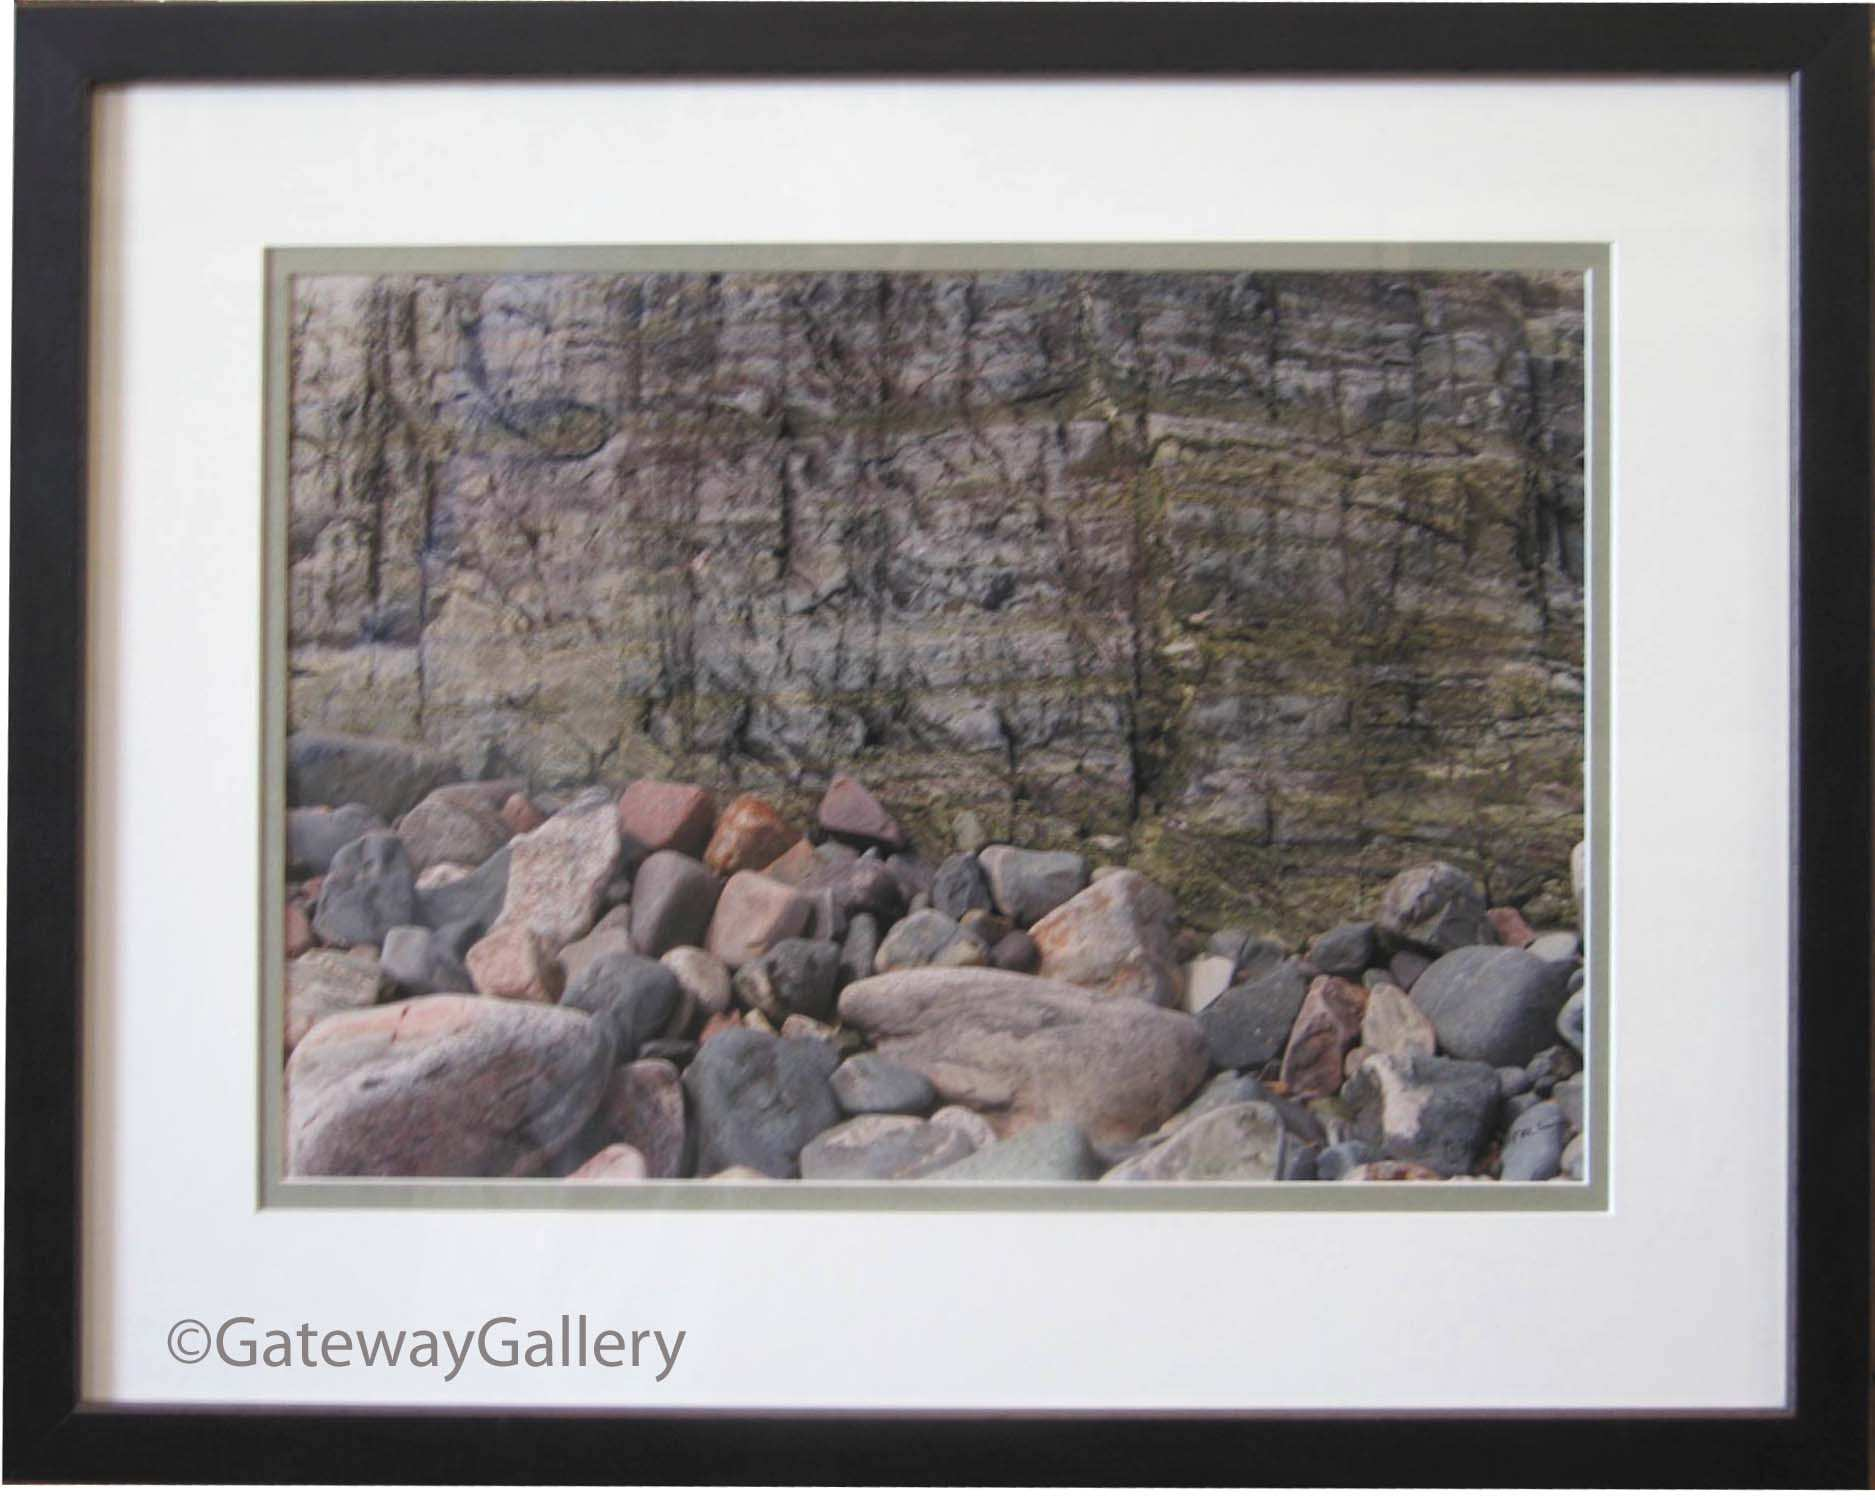 8 X 10 Wall Art Prints Beautiful Broman Graphy at Gateway Gallery In Gorham Nh